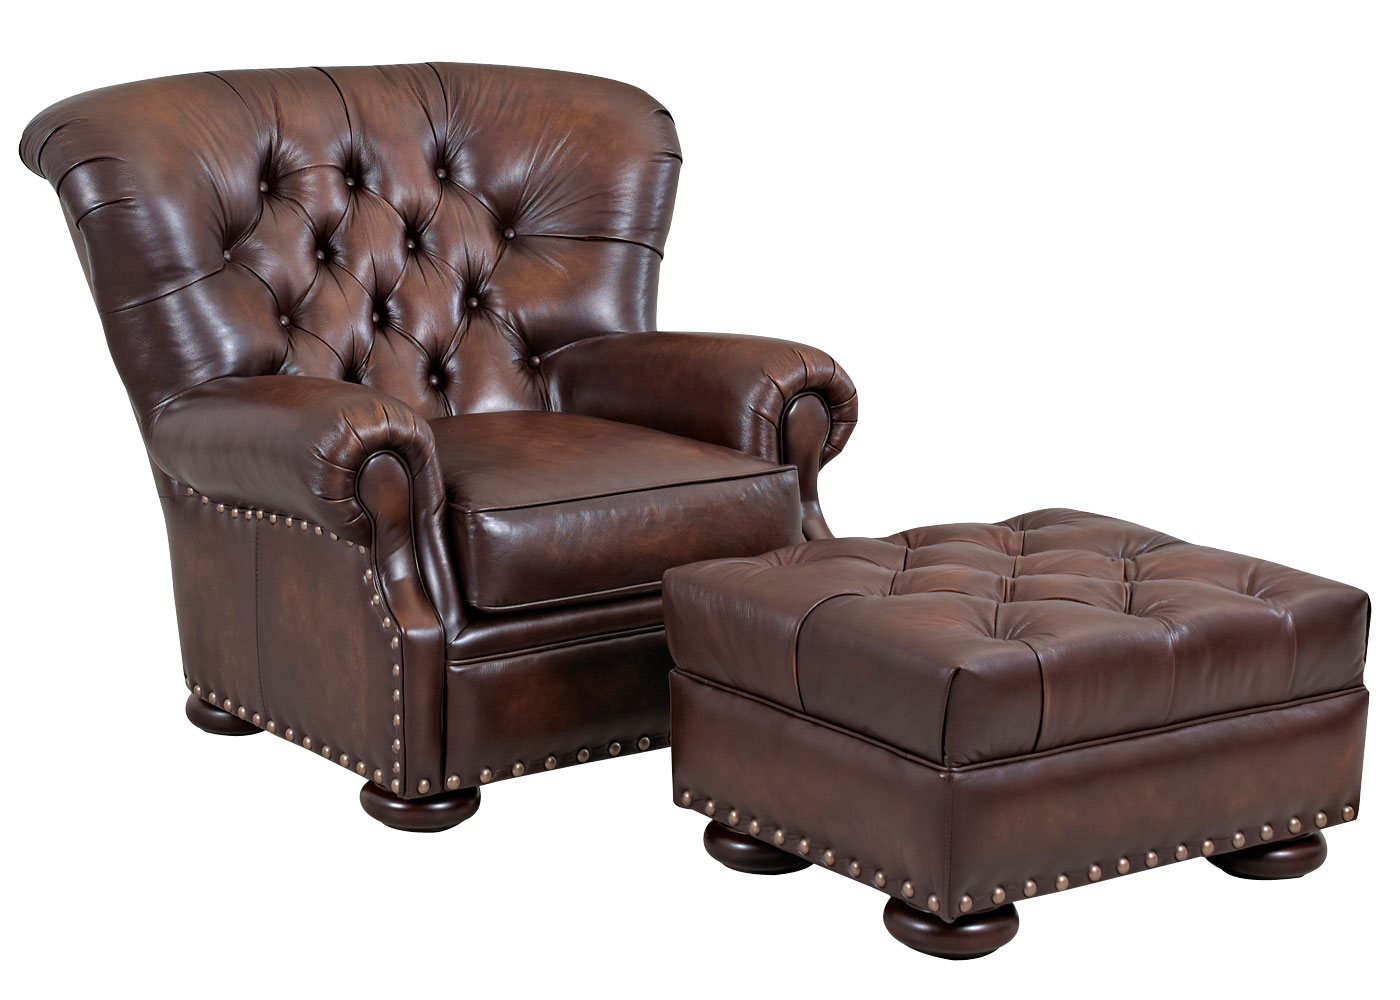 Thurman British Gentleman S Leather Club Chair Leather